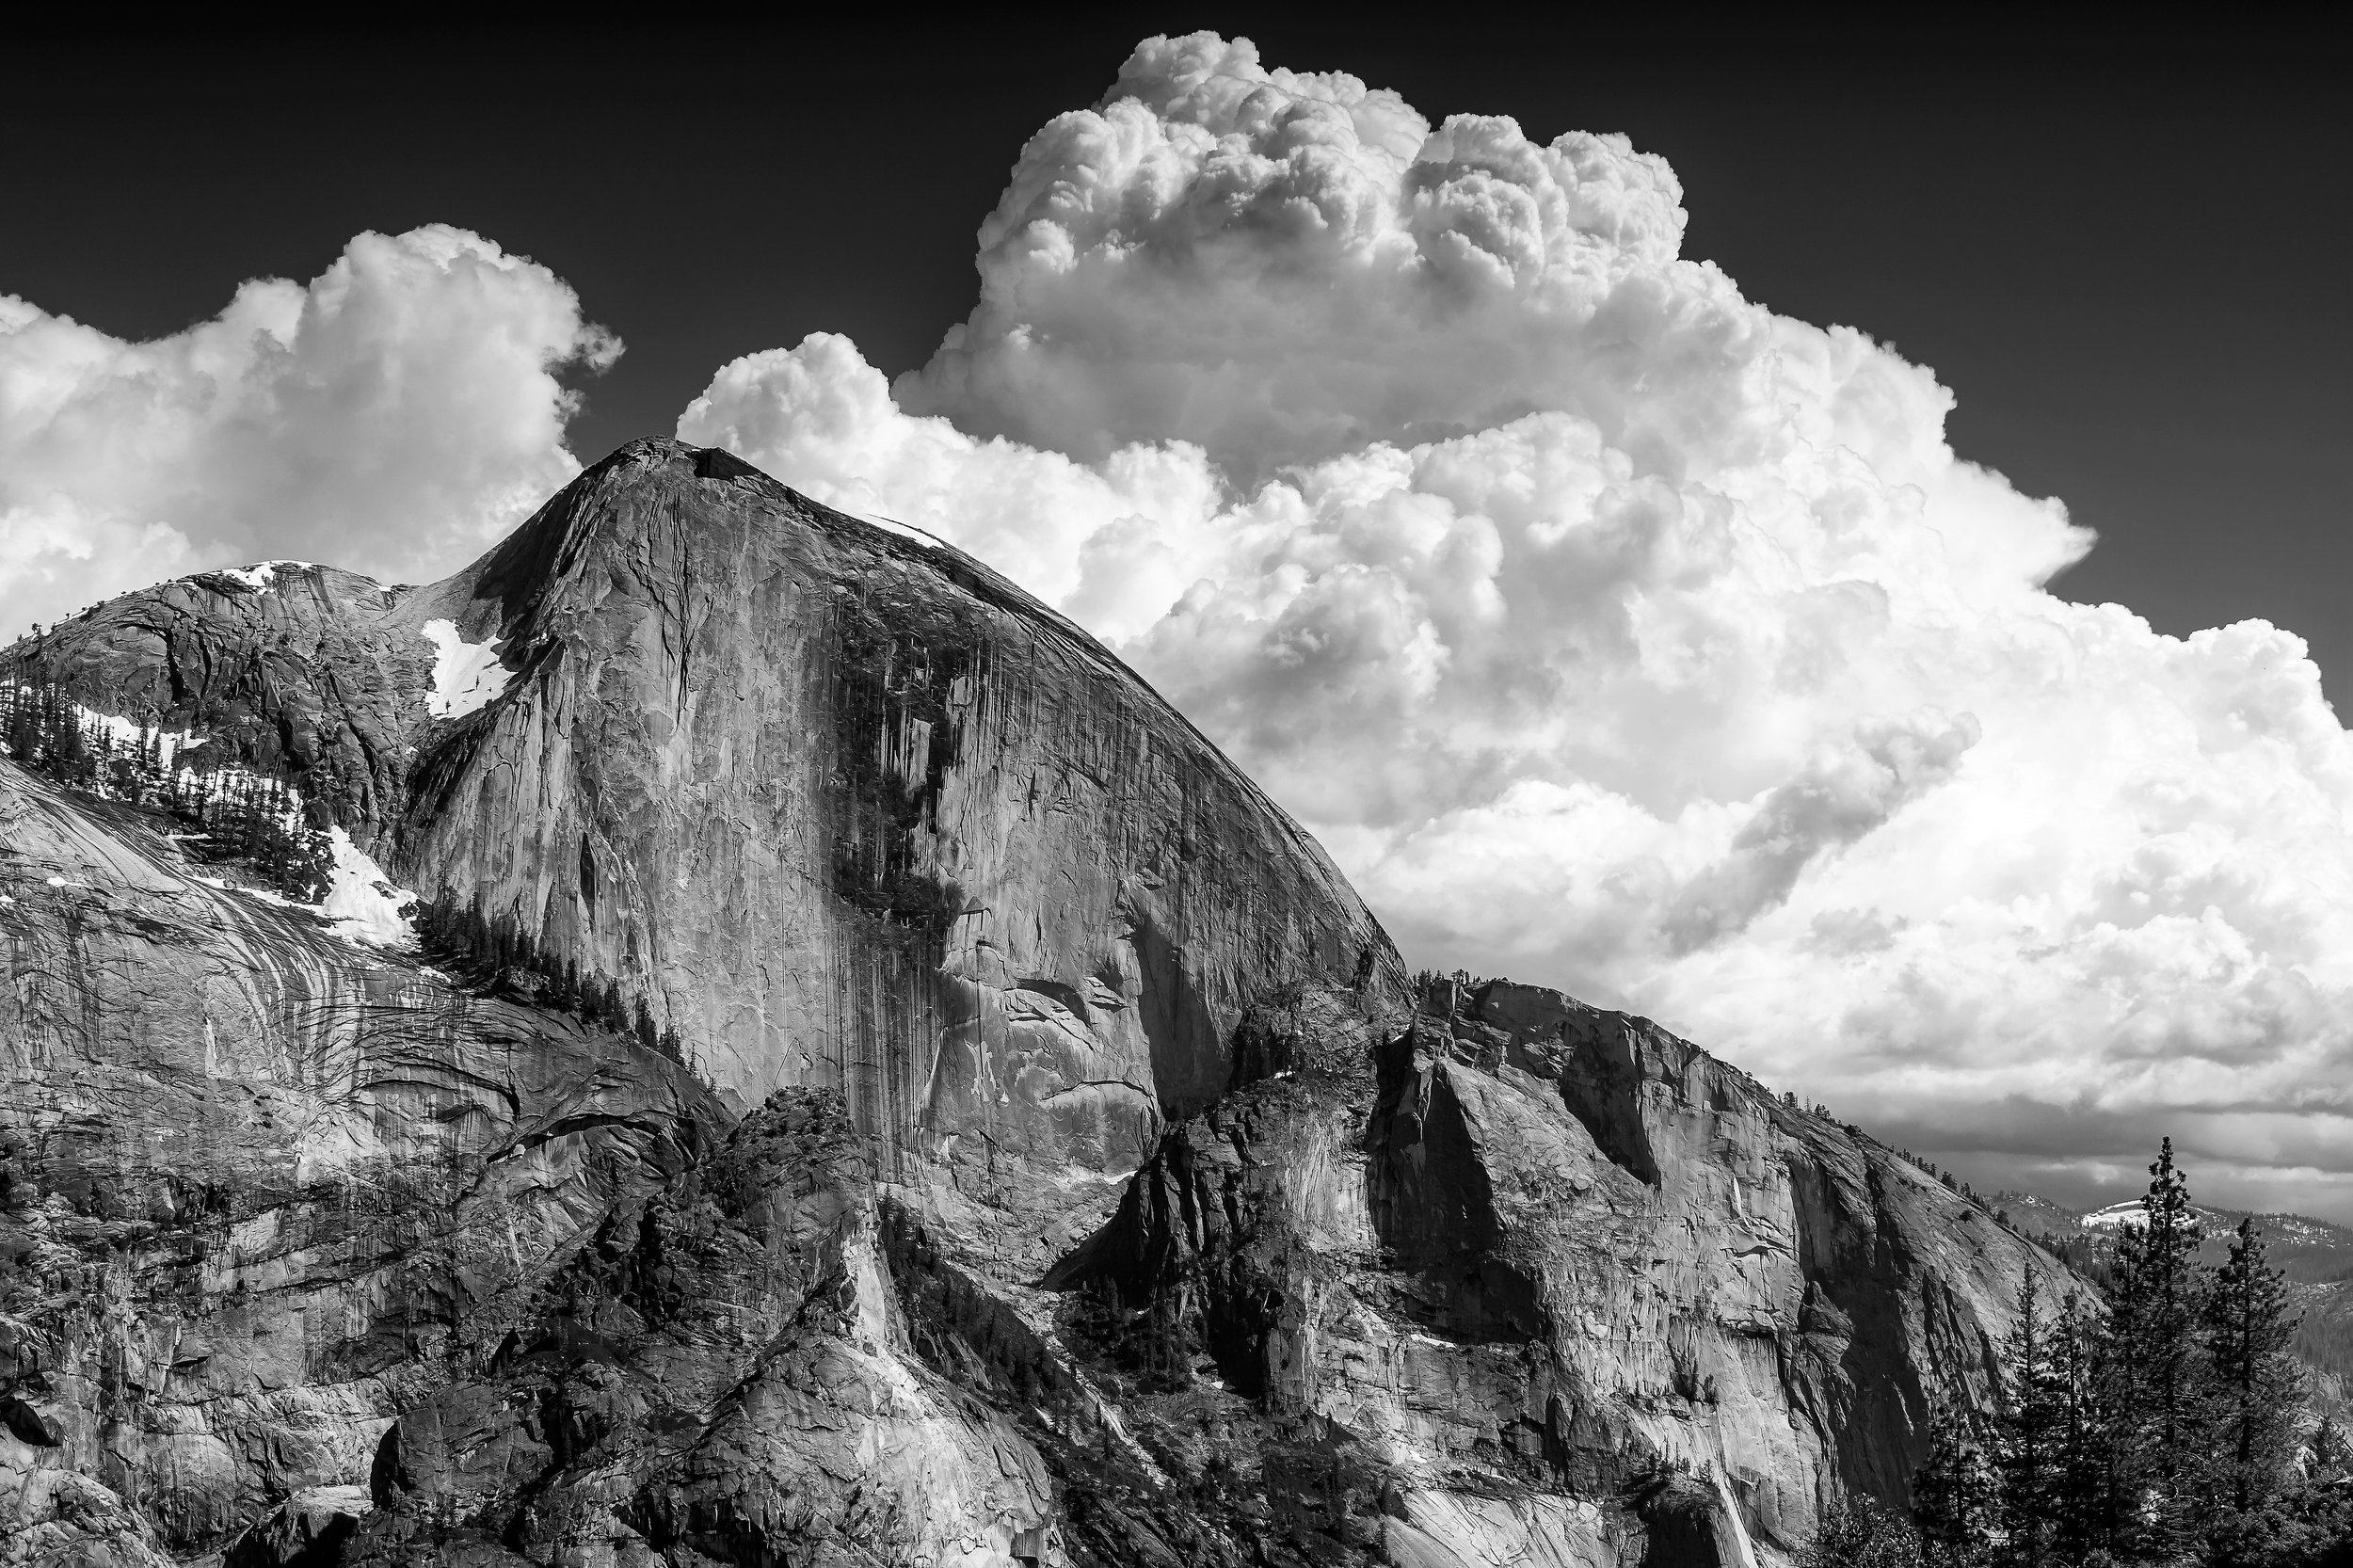 By: H. Kajitani aka Kaji  Title: Afternoon Half Dome Style: Photography  Summary: View of Half Dome from Snow Creek Trail in Summer afternoon  To view more of Kaji's photography you can visit  https://www.viewbug.com/member/hkphotography